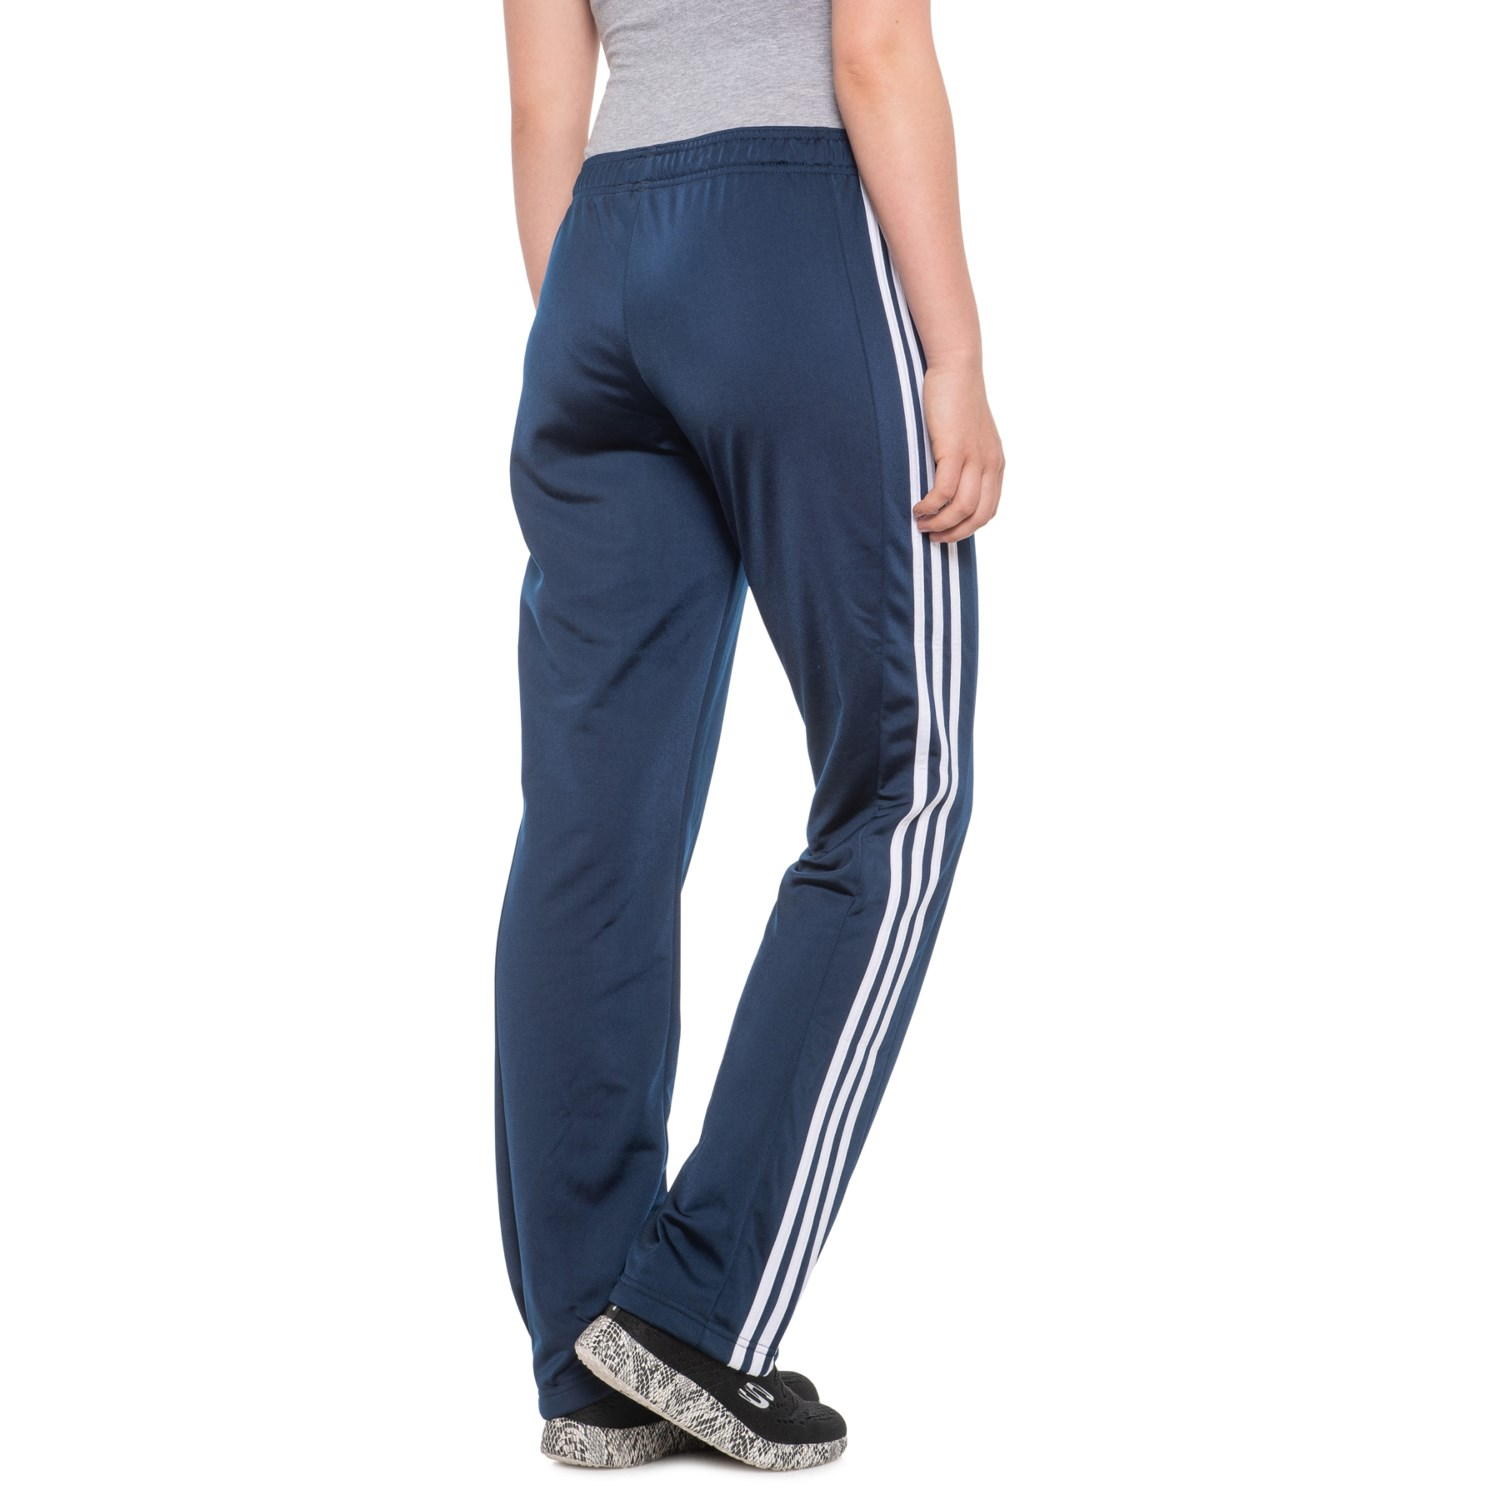 ce41ae743e63 adidas Designed 2 Move Straight Pants (For Women) - Save 29%